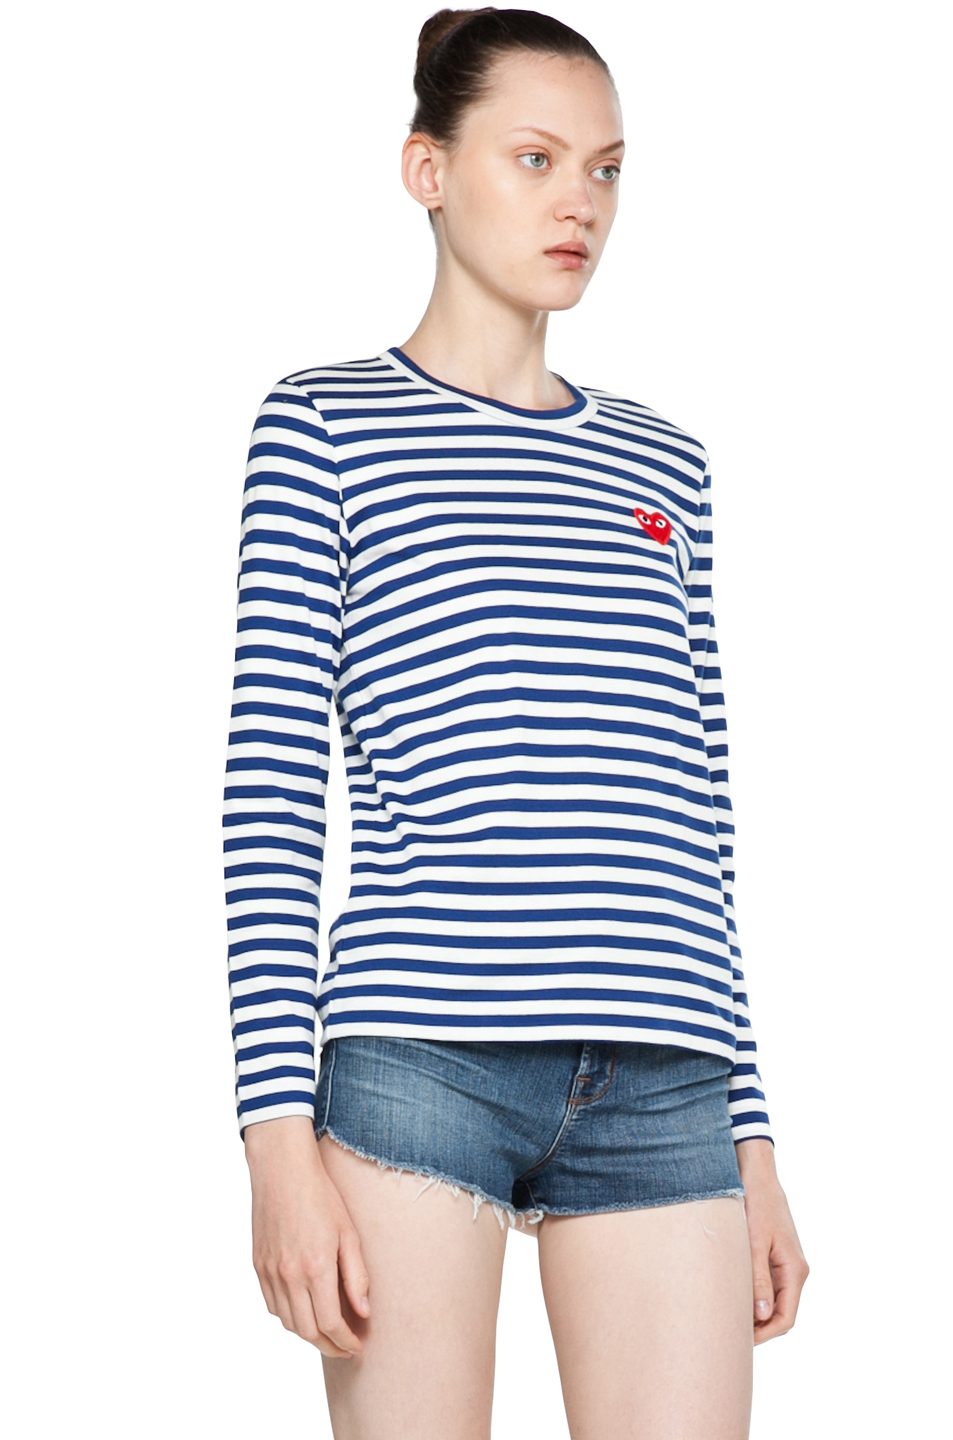 Comme Des Garcons PLAY|Striped Cotton Red Heart Tee in Royal Blue